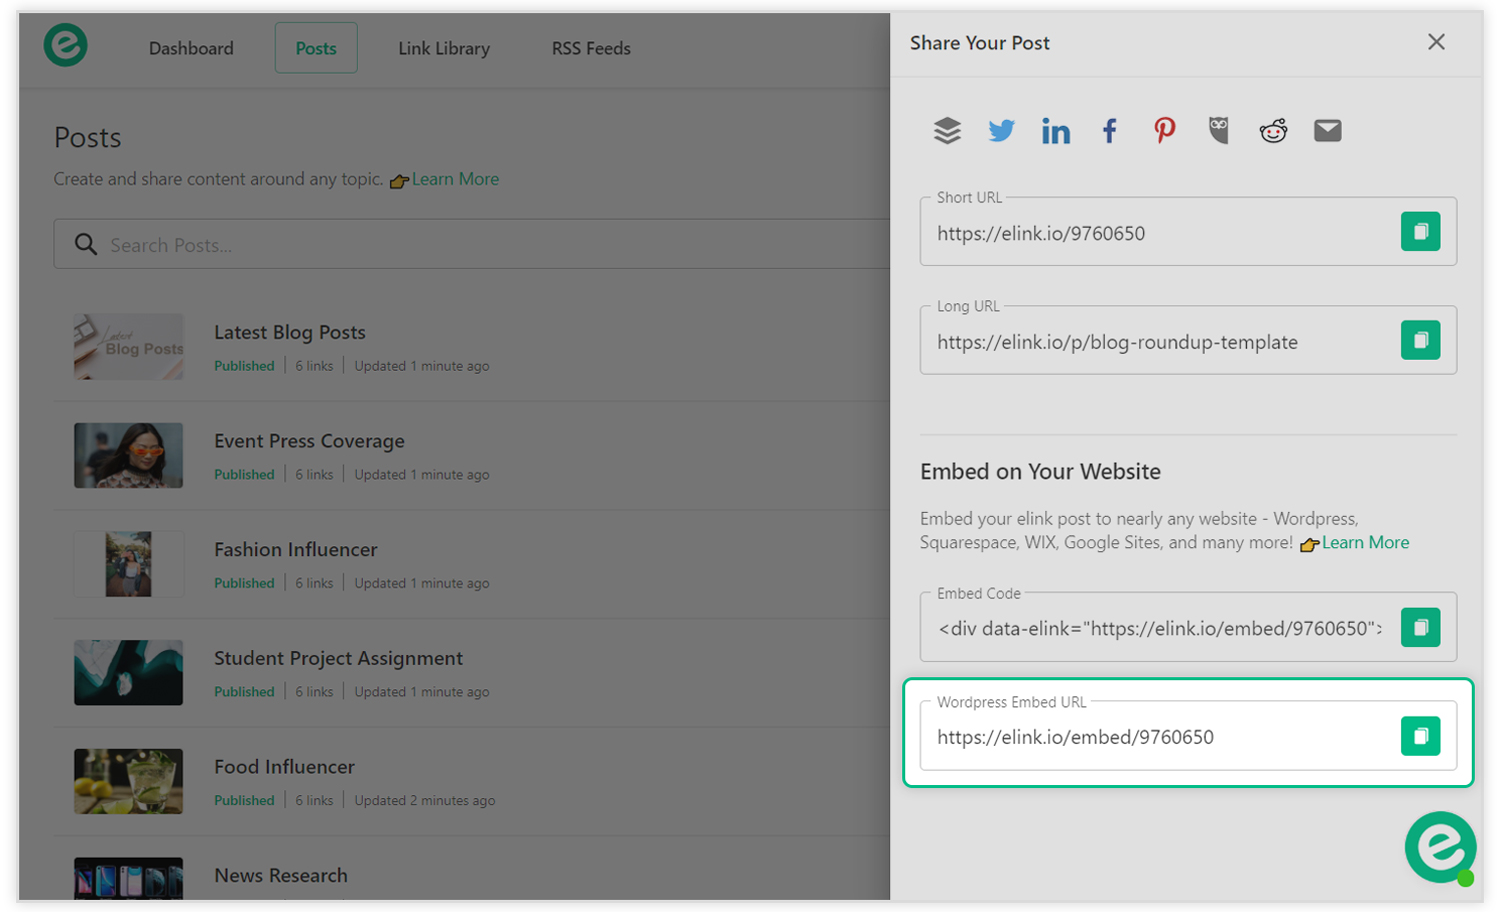 Preview of wordpress embed code for rss feeds post